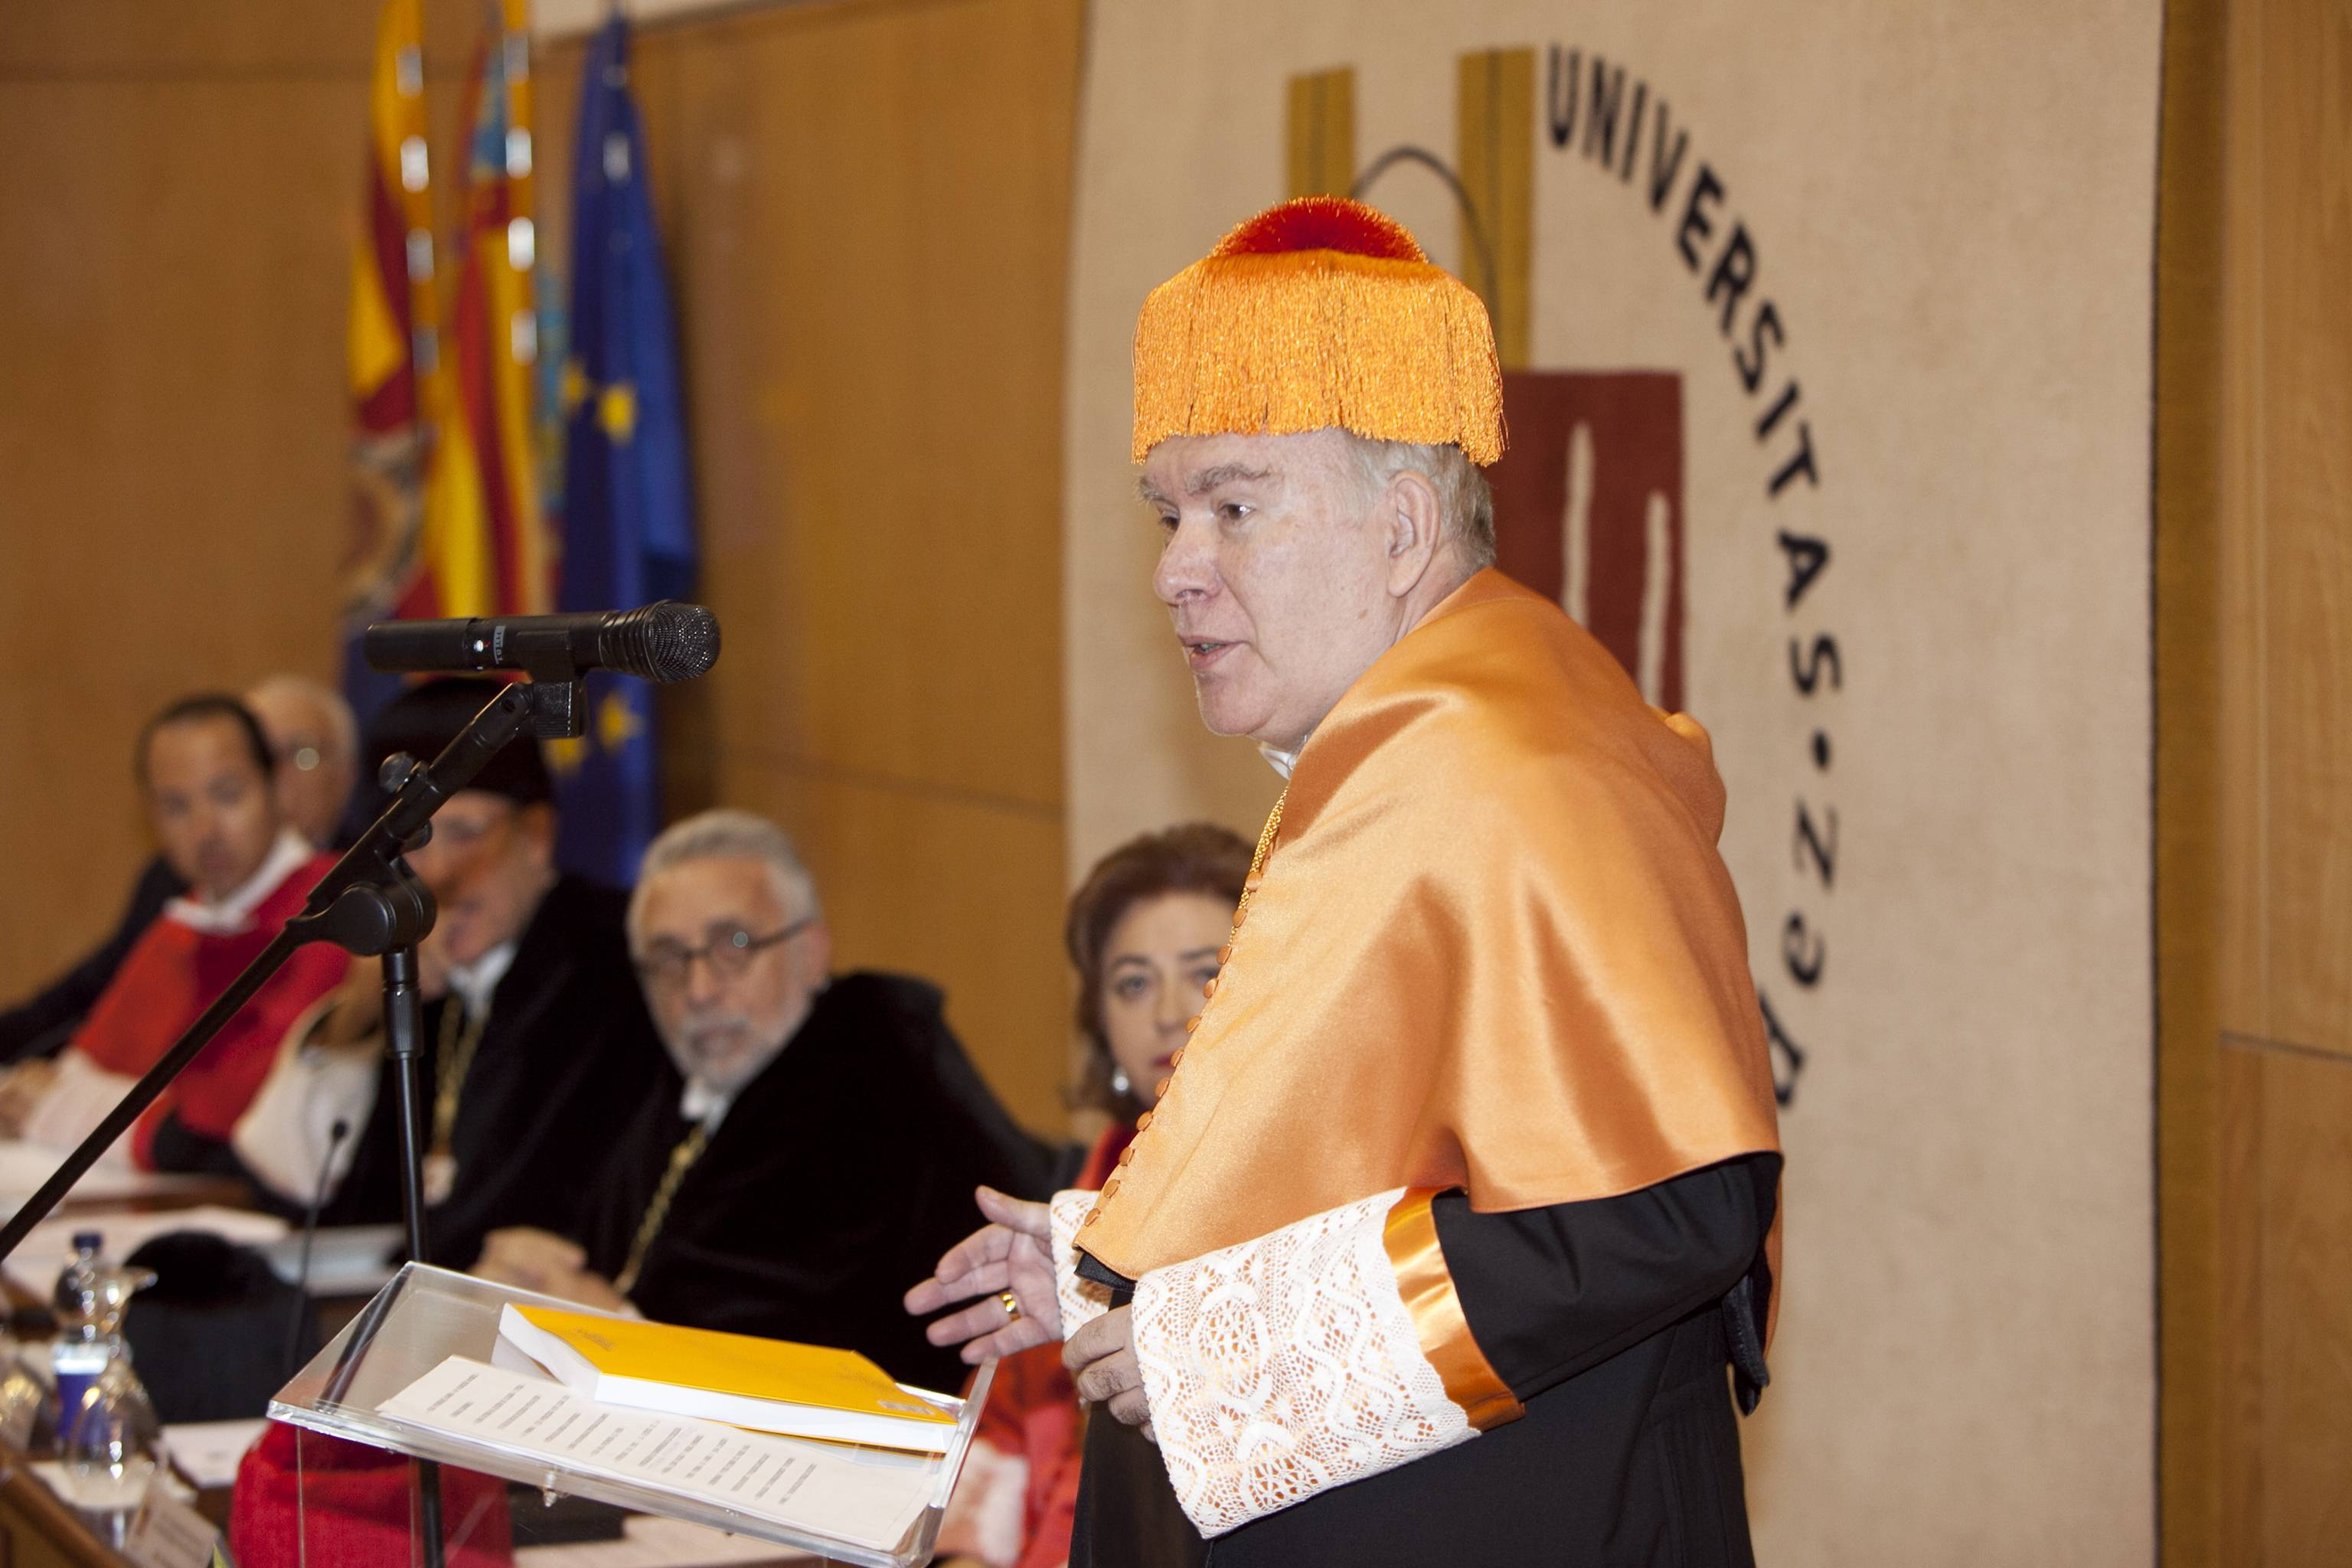 doctor-honoris-causa-luis-gamir_mg_0831.jpg